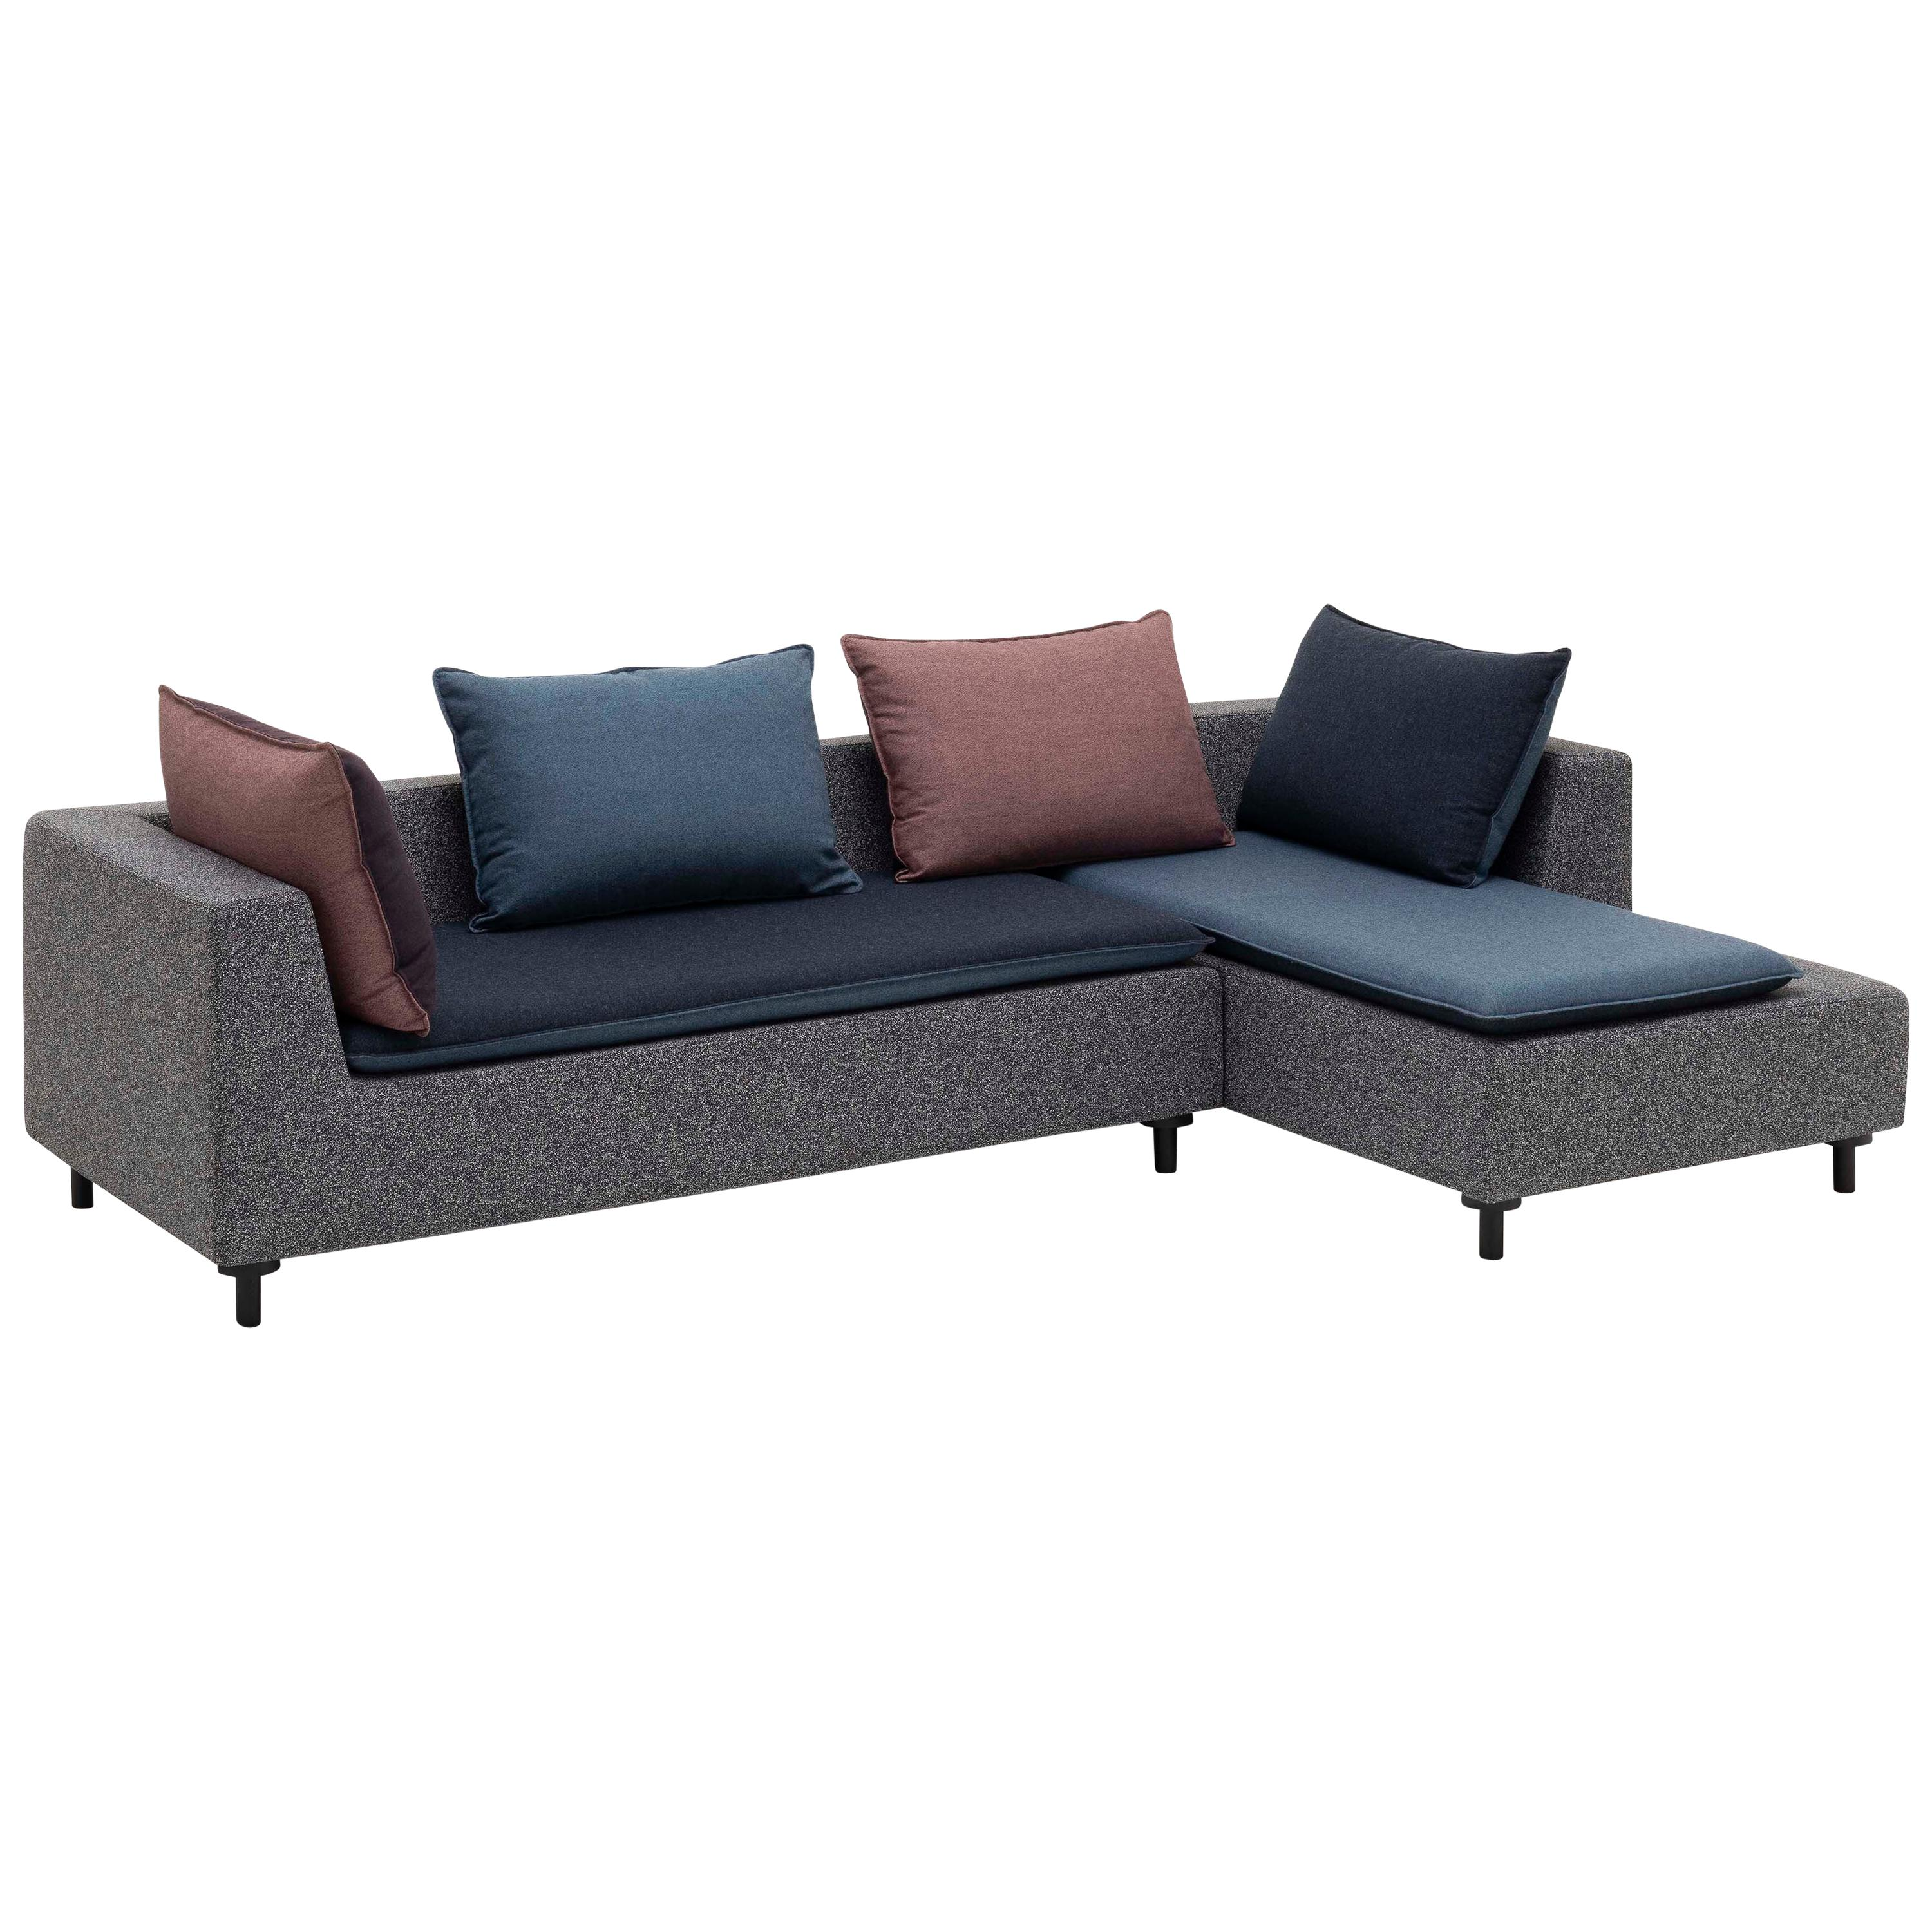 Established & Sons Barbican Sectional with Blue Cushions by Konstantin Grcic